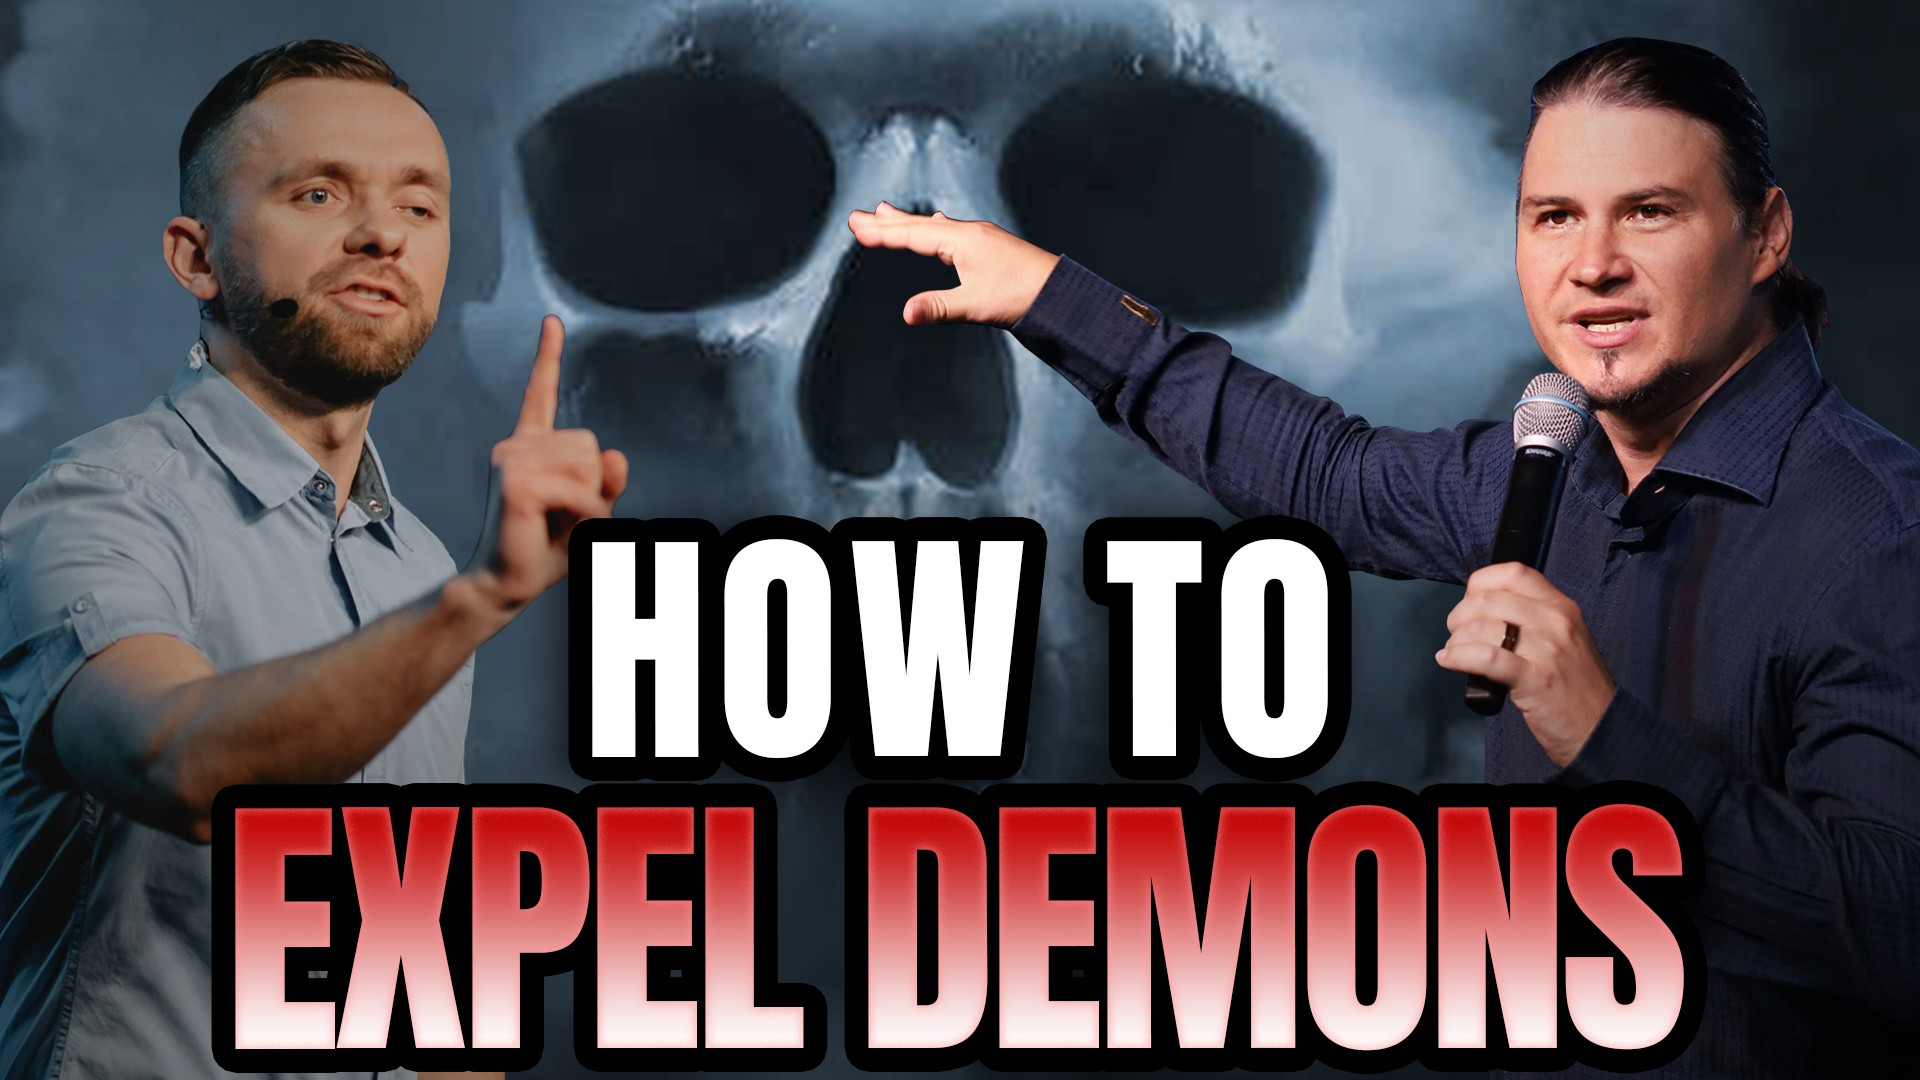 How To Expel Demons